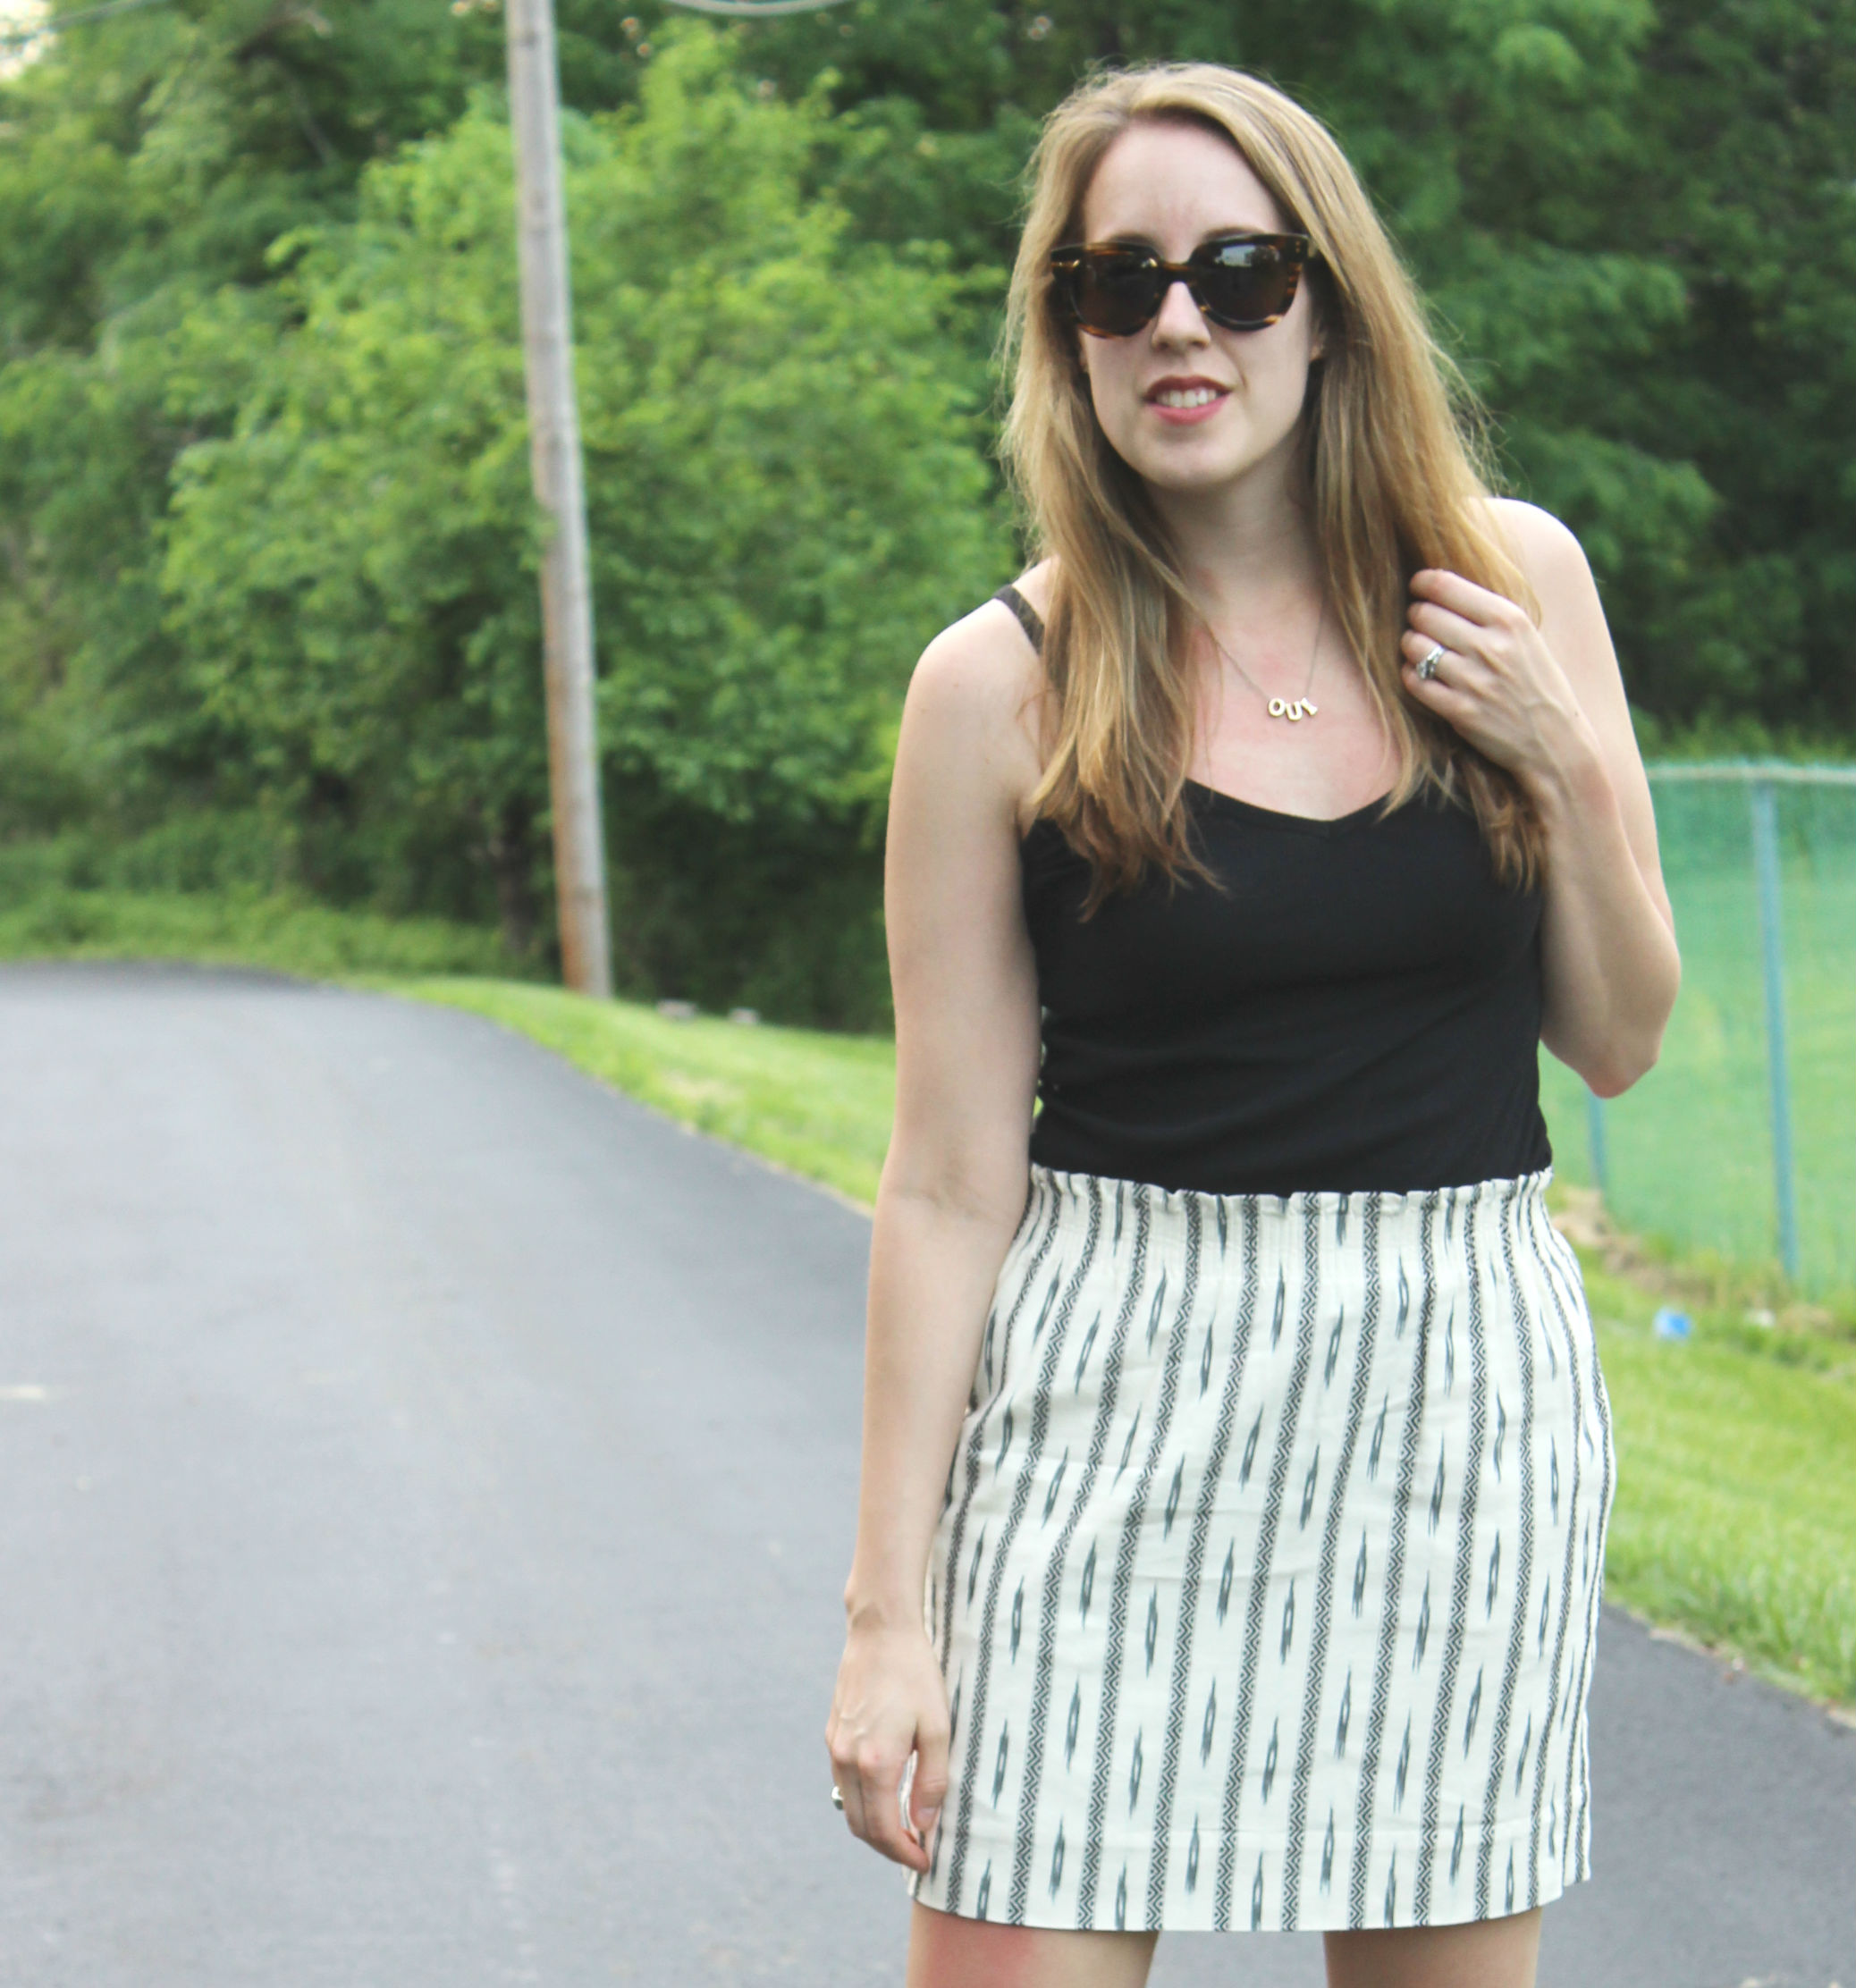 Wearing: It's Summer Time and Skirts are so Easy